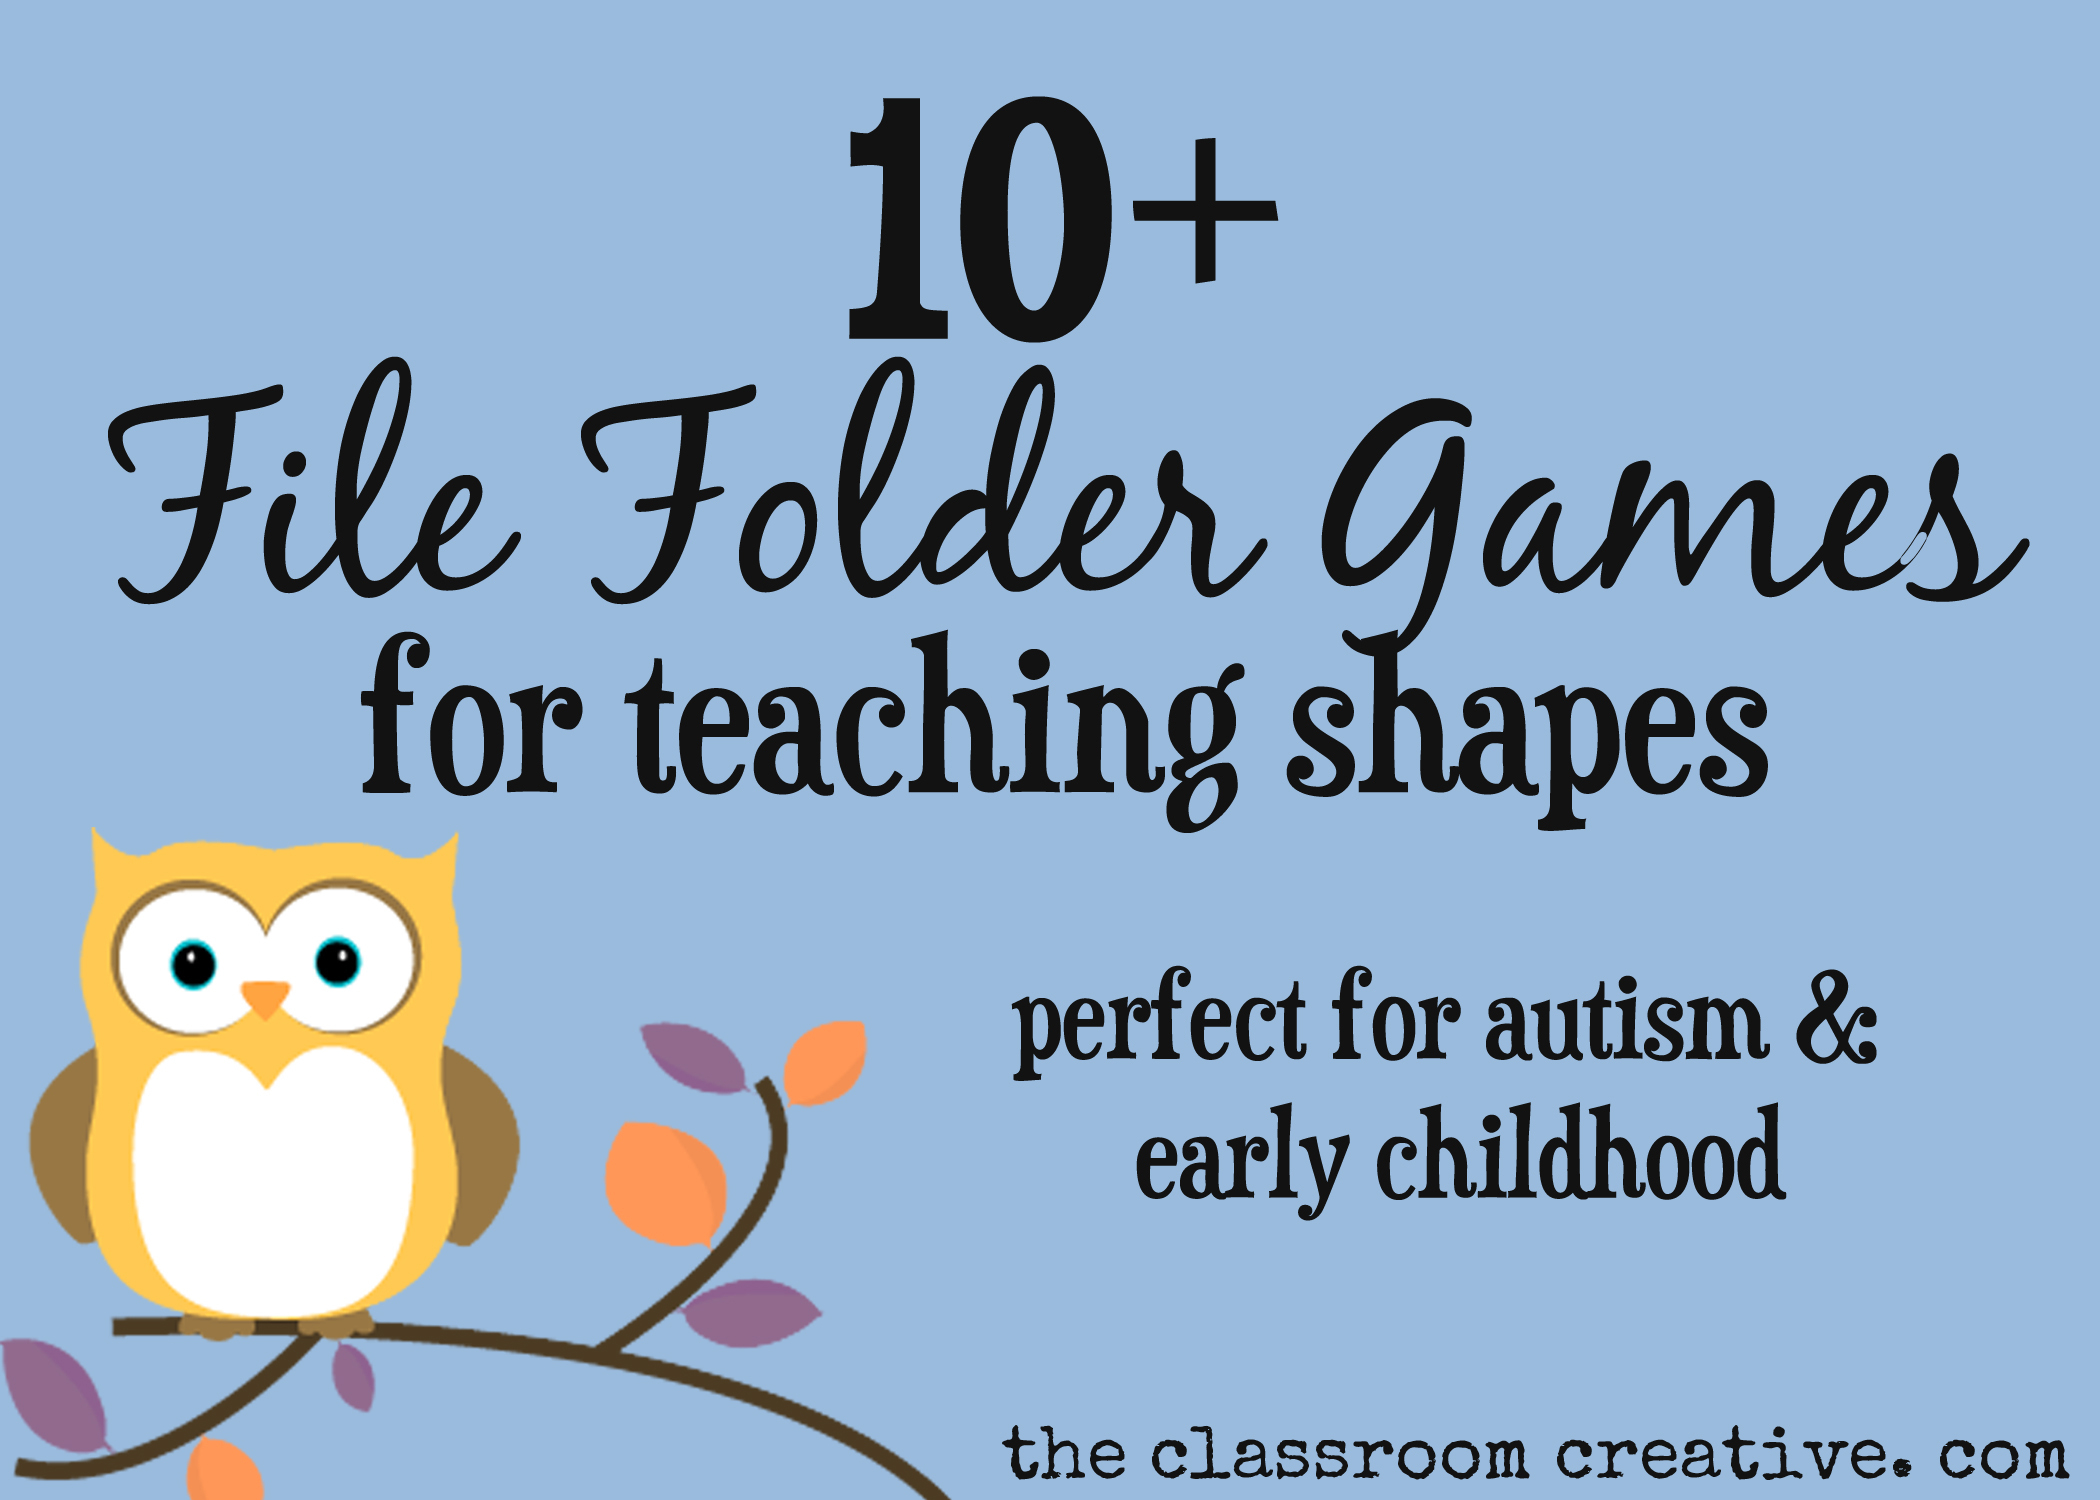 File Folder Games For Teaching Shapes - Free Printable Math File Folder Games For Preschoolers